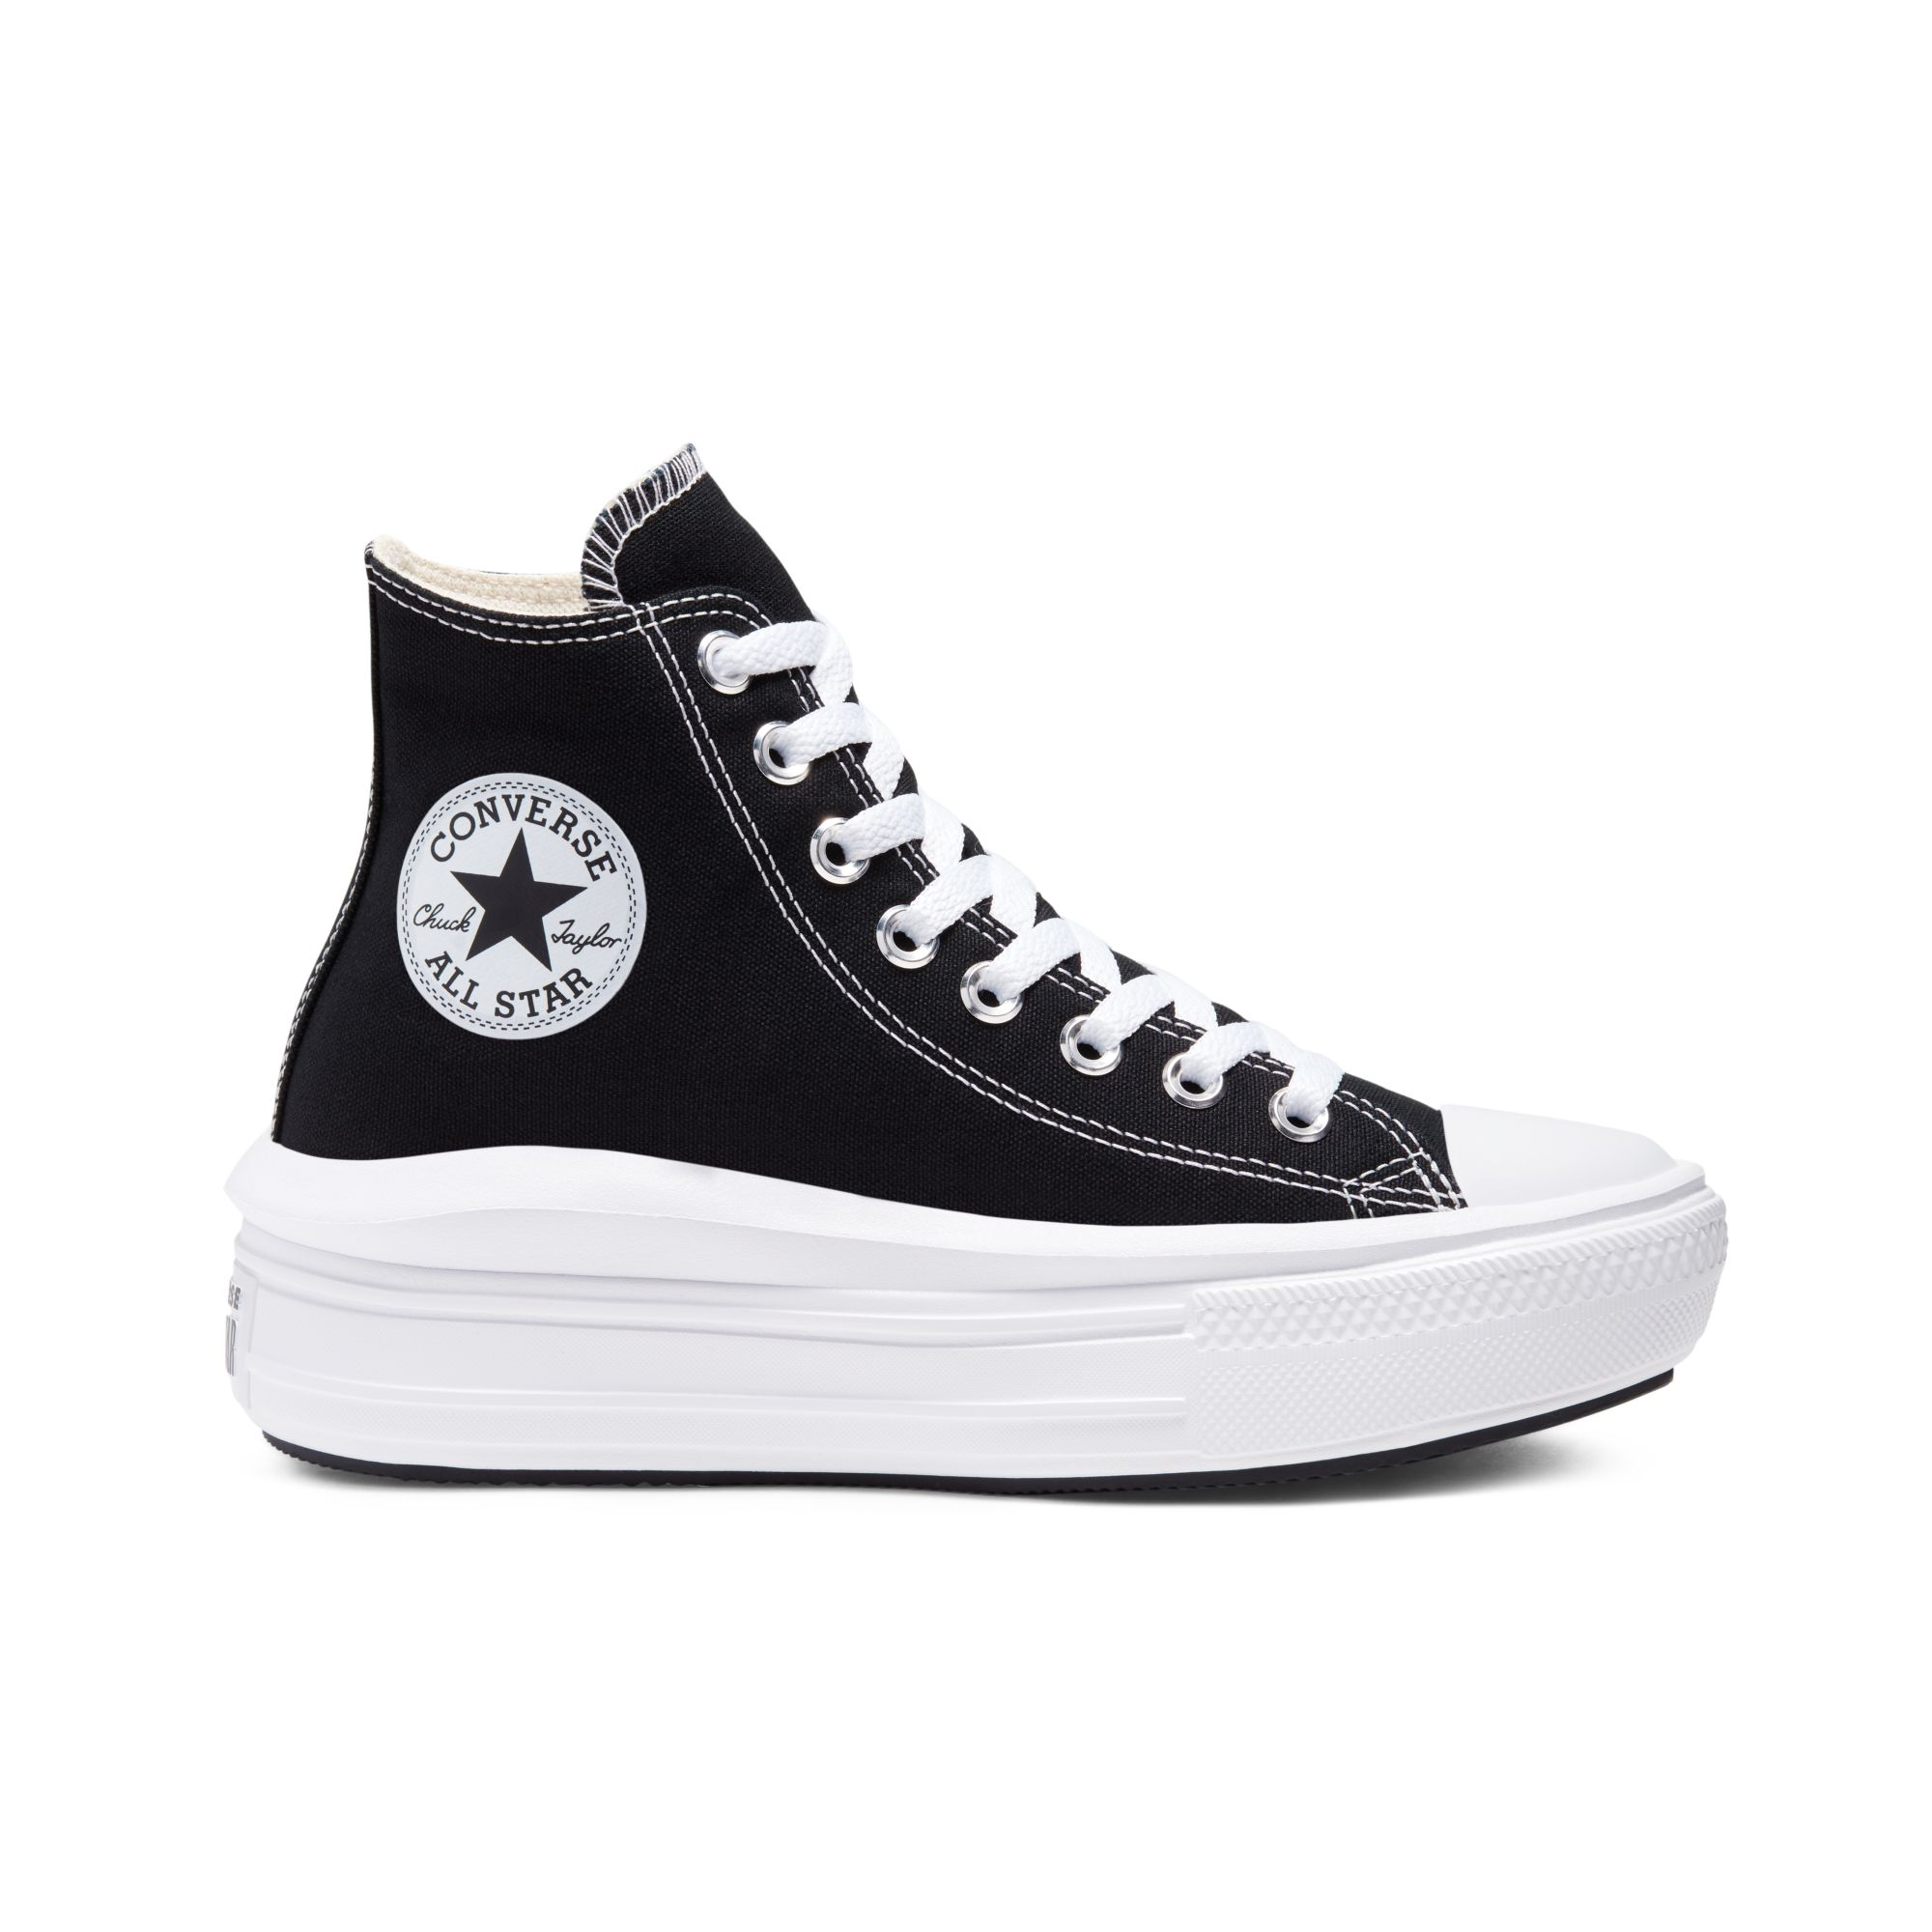 Buy Converse Top Products Online